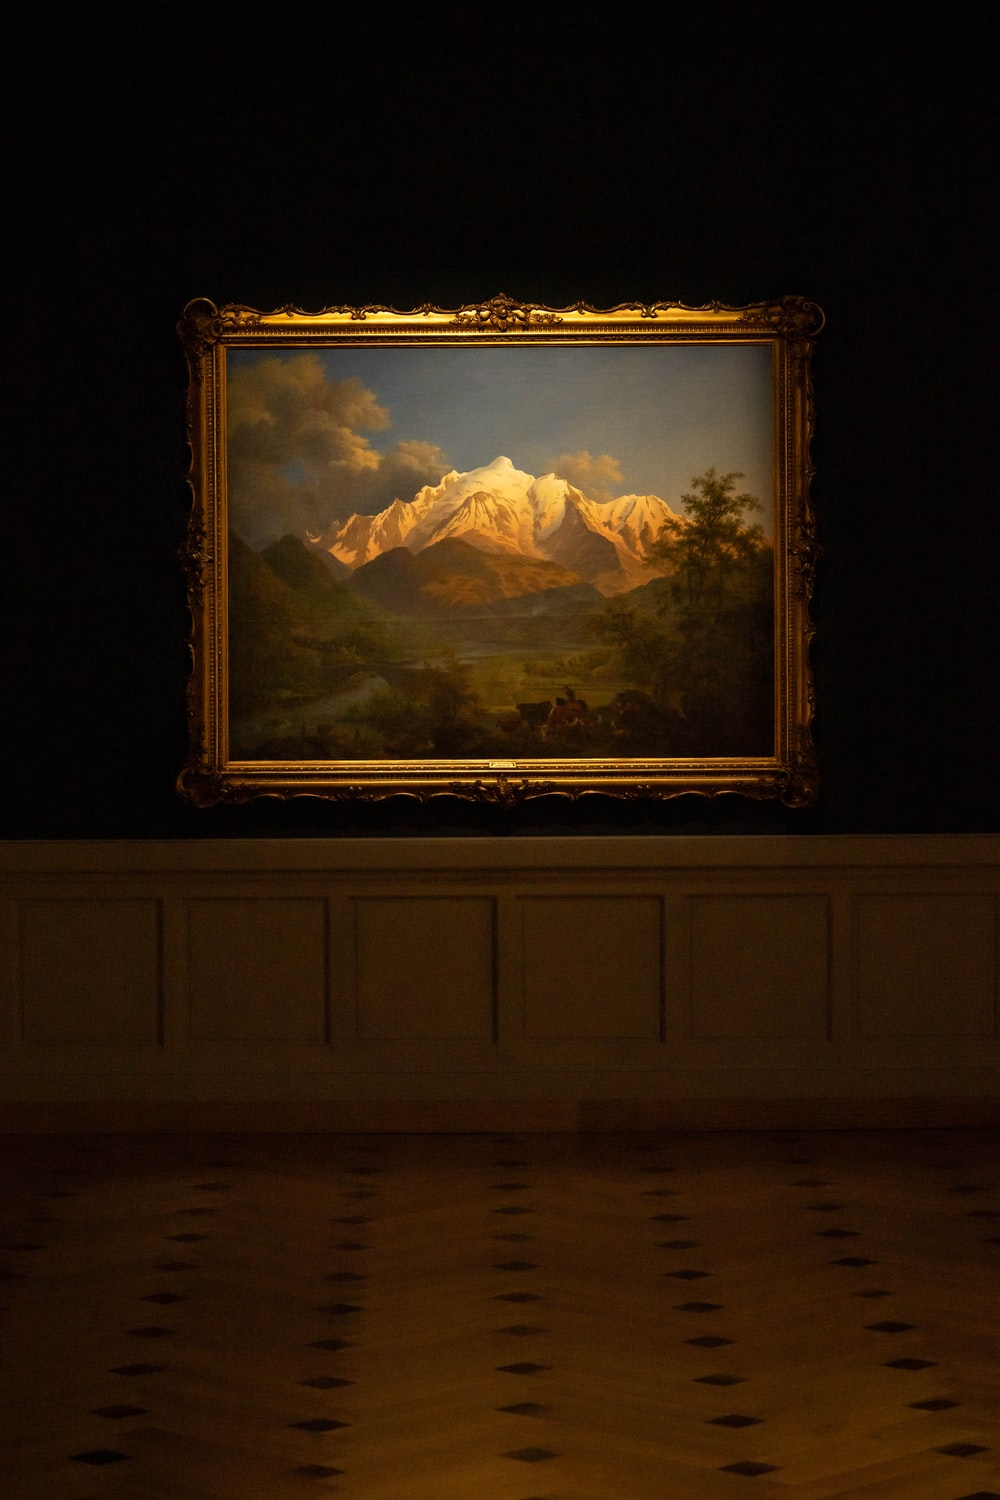 brown wooden framed painting of mountains